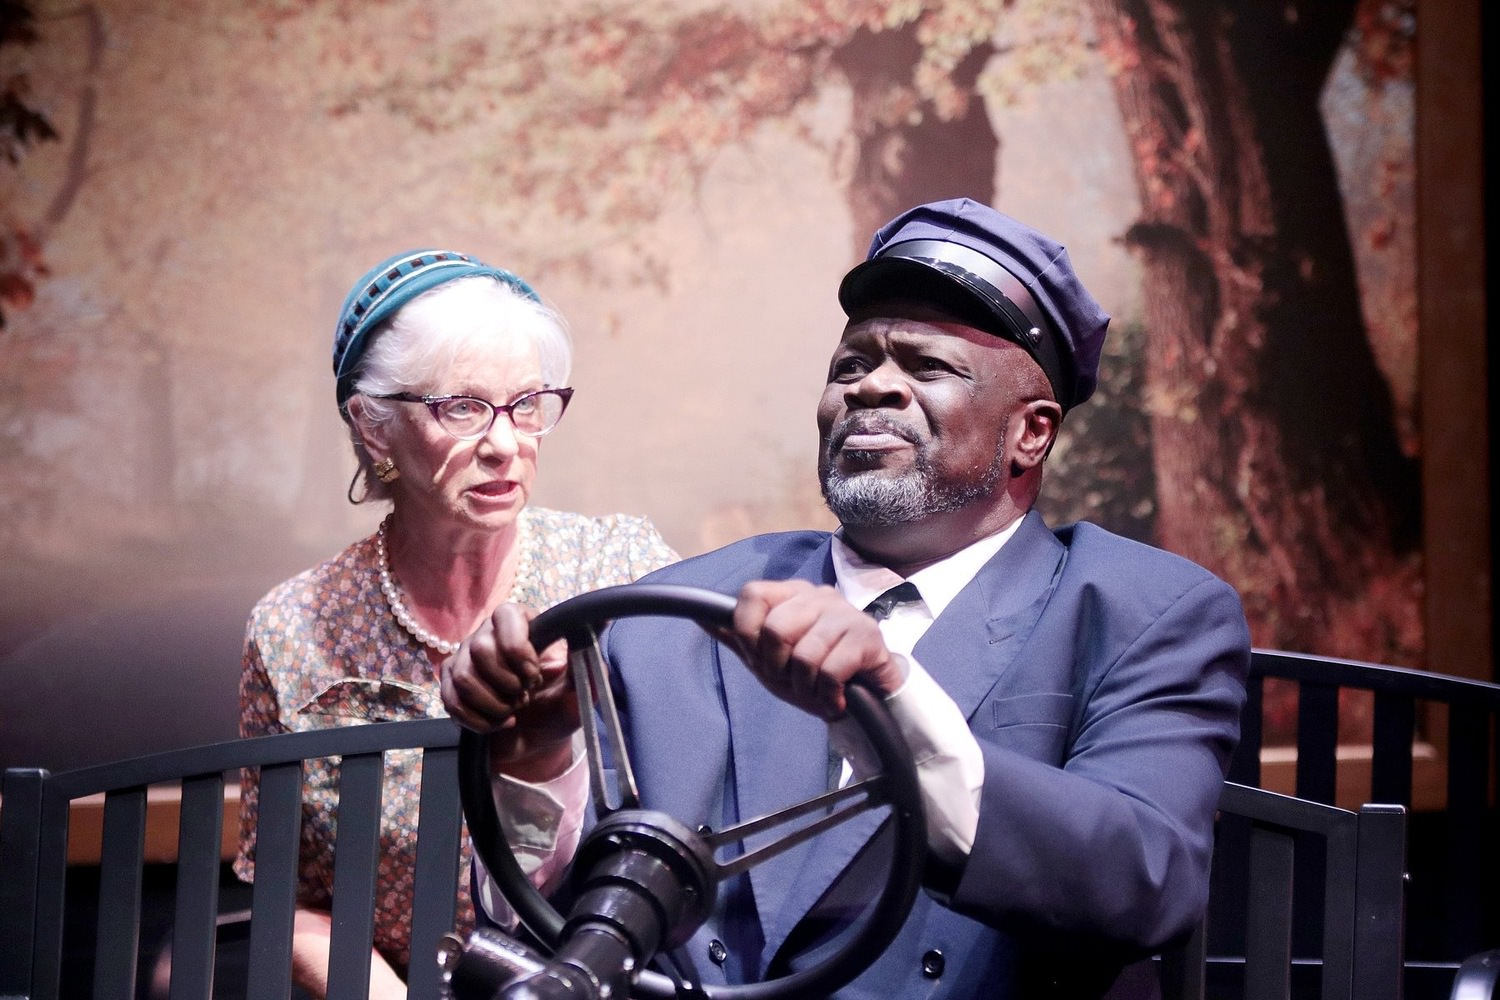 Miss Daisy is convinced Hoke doesn't know the way to the Piggly Wiggly in DRIVING MISS DAISY at COM Theatre - The Biggest Li'l Theatre In Texas!  *Pin Lim / Forest Photography* 1